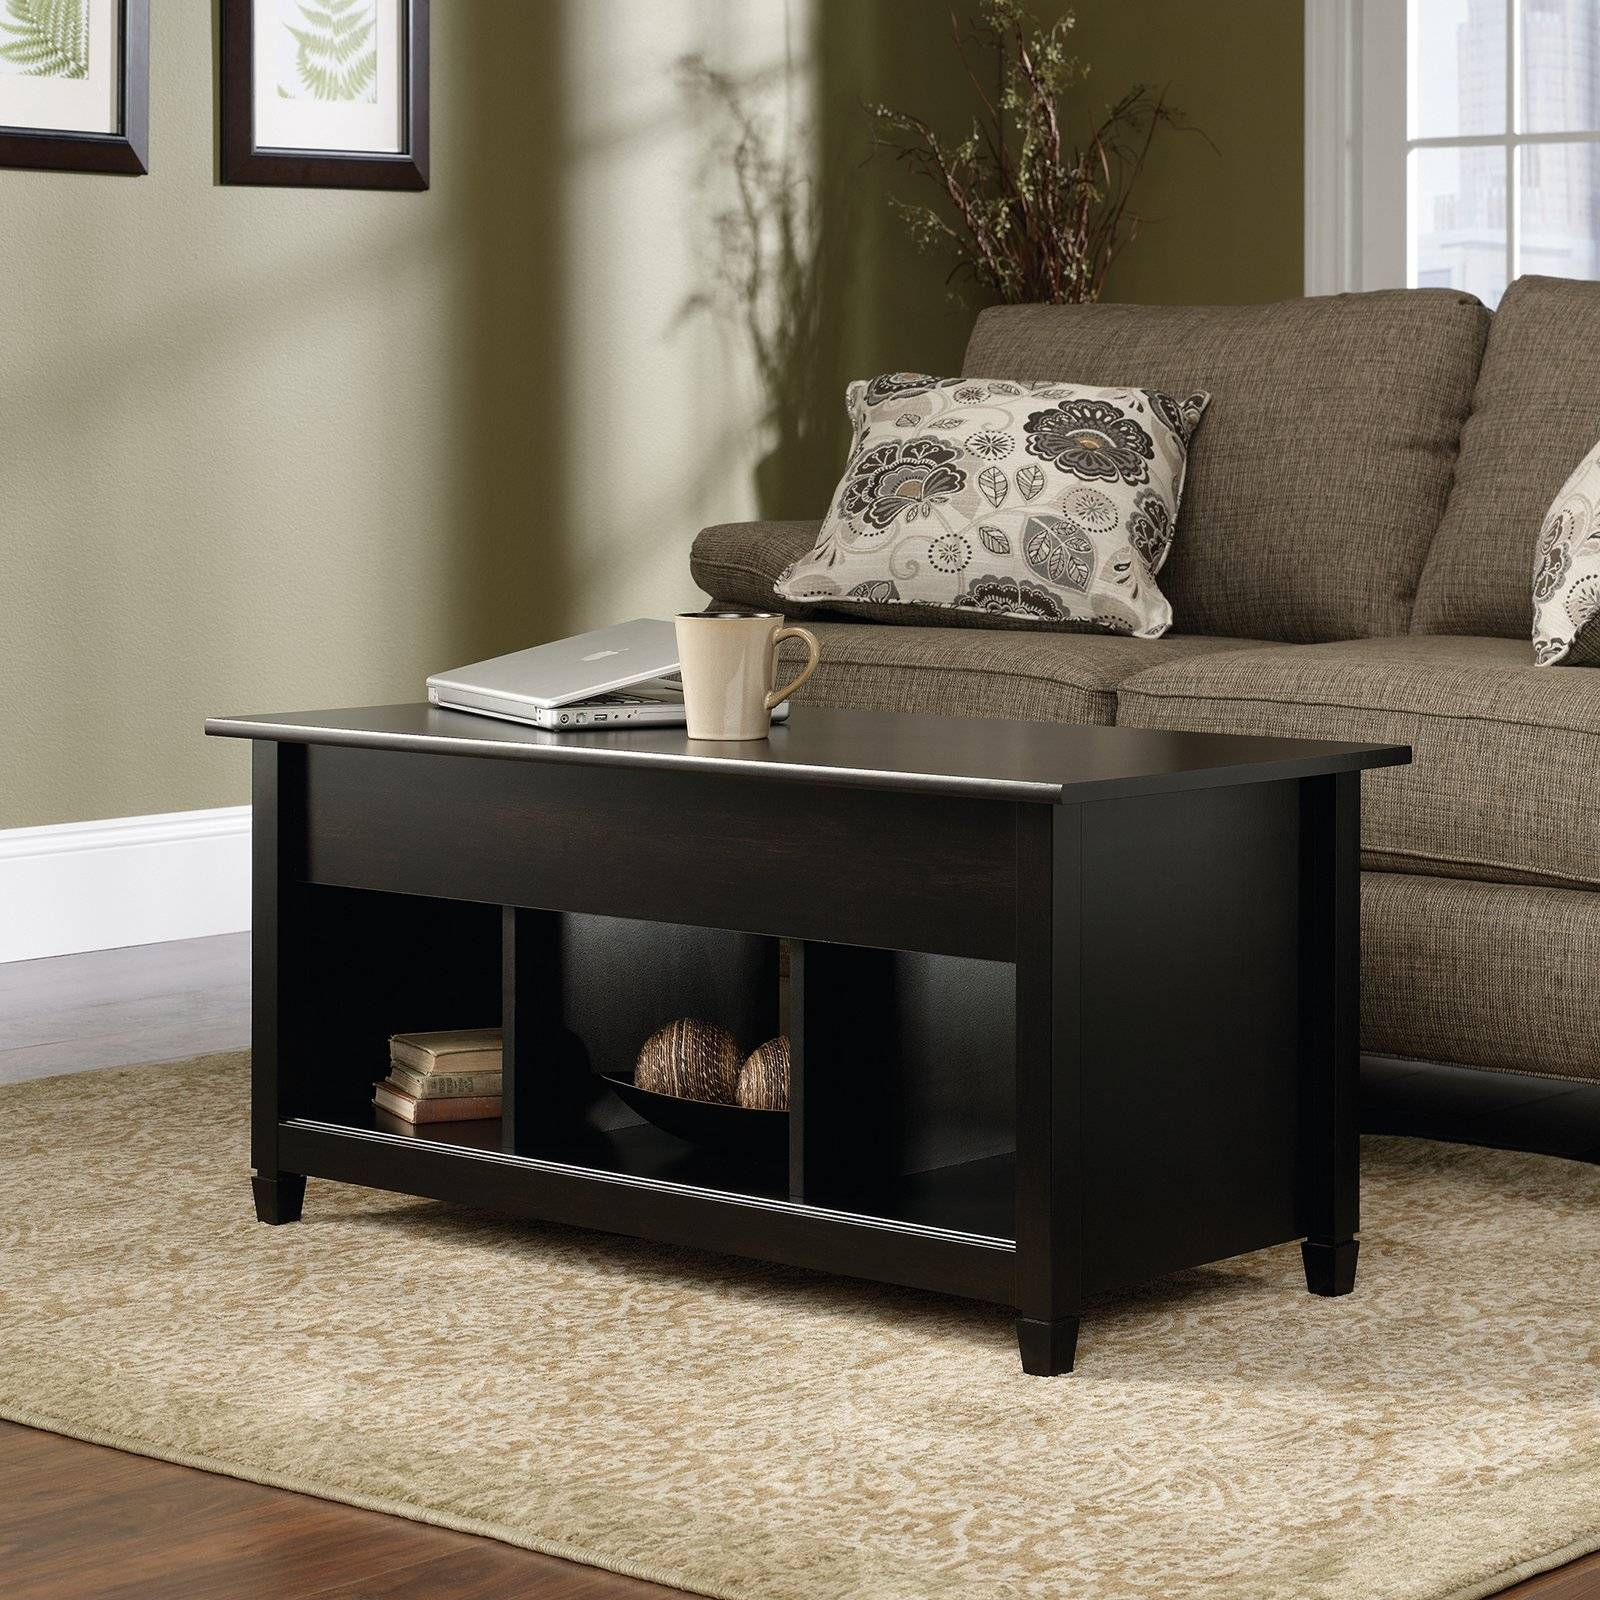 Turner Lift Top Coffee Table - Espresso | Hayneedle in Coffee Tables With Lift Top and Storage (Image 12 of 14)